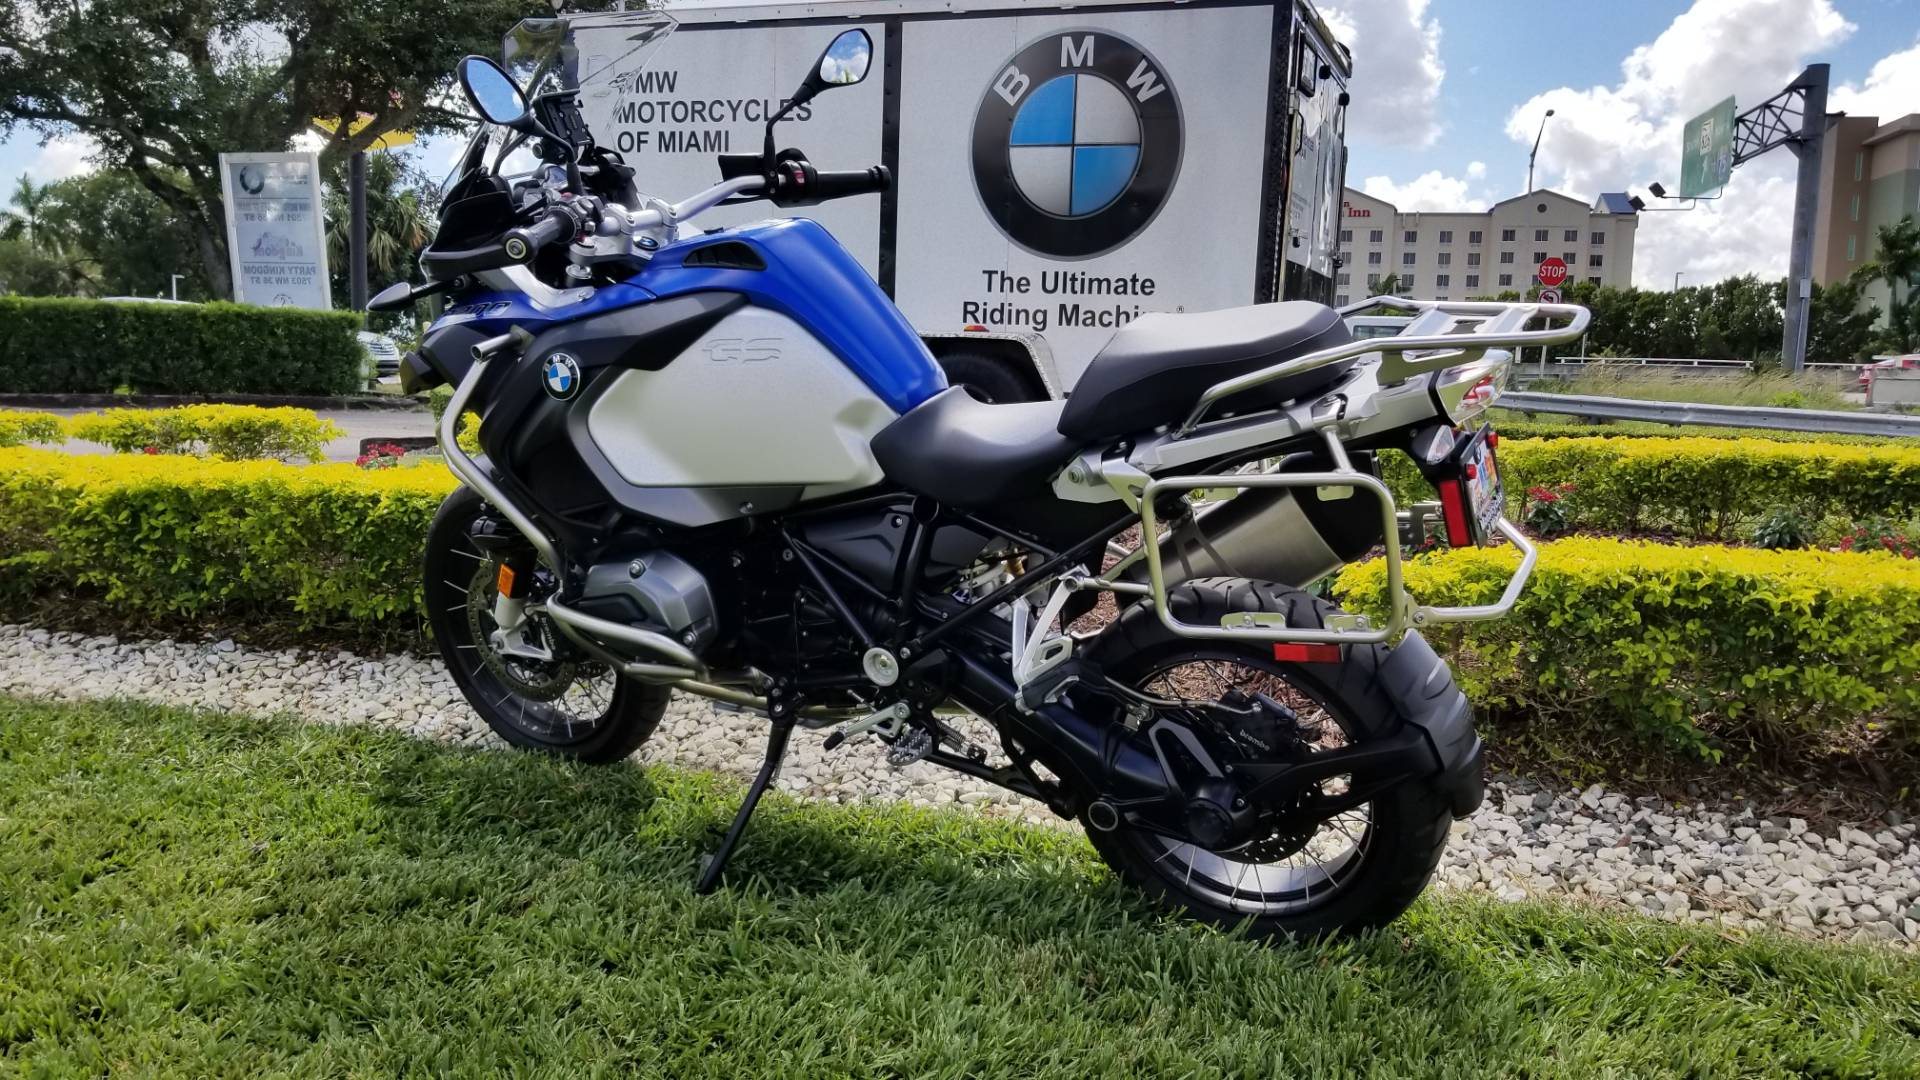 Used 2015 BMW R 1200 GSA for sale, BMW R 1200GSA for sale, BMW Motorcycle R1200GSA, used BMW 1200GSA, DUAL, GSA, BMW - Photo 6